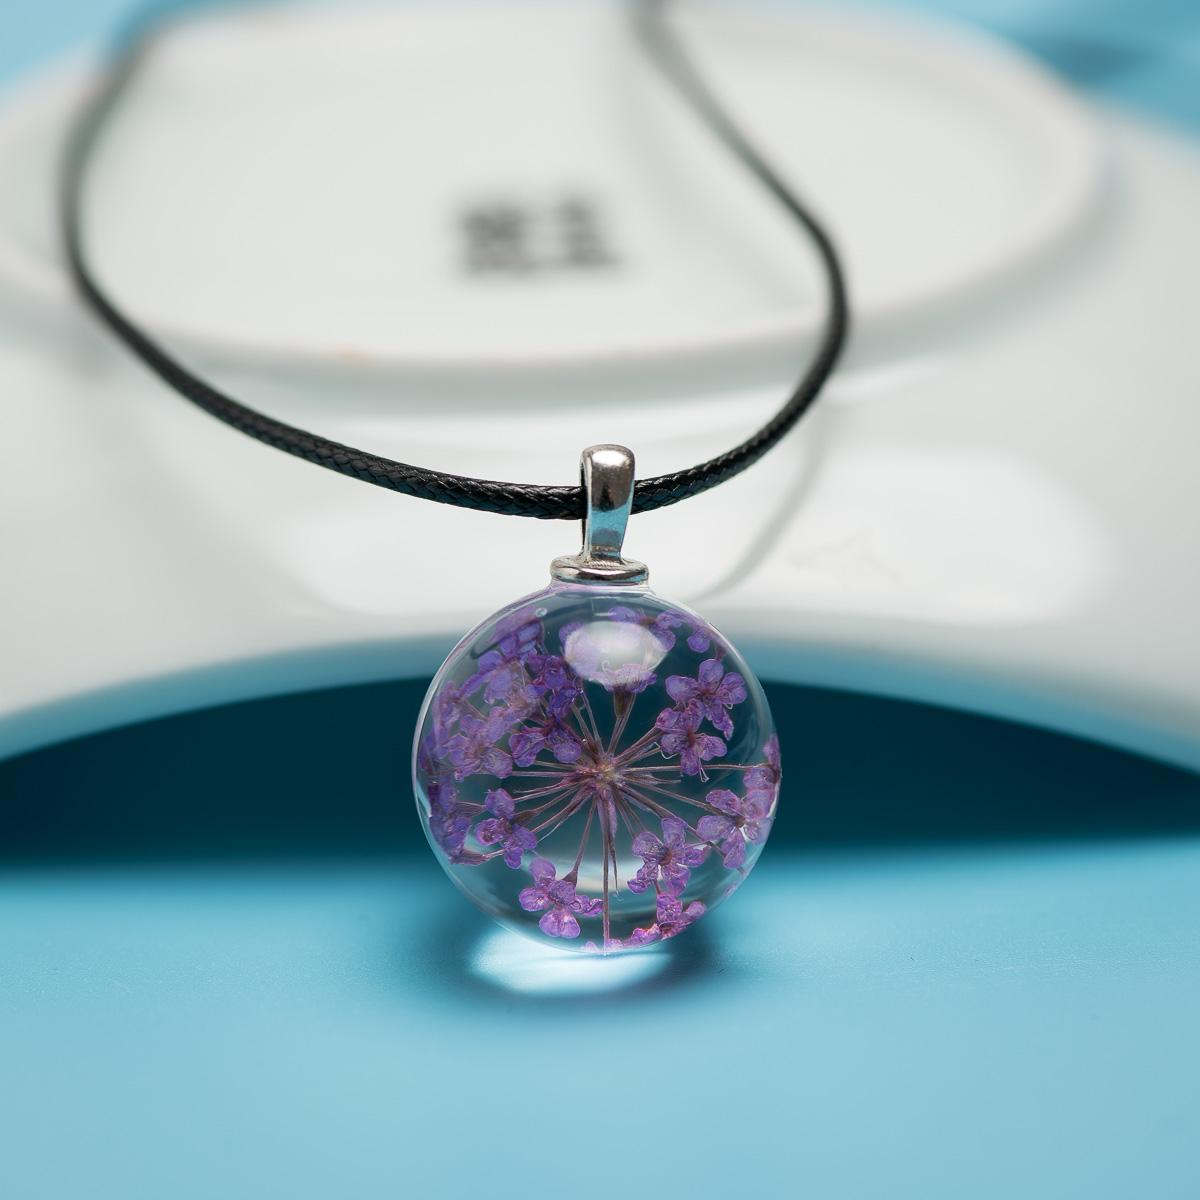 Natural Dried Flower Glass Ball Pendant long Rope Necklace with Ceramic Beads Drop shipping